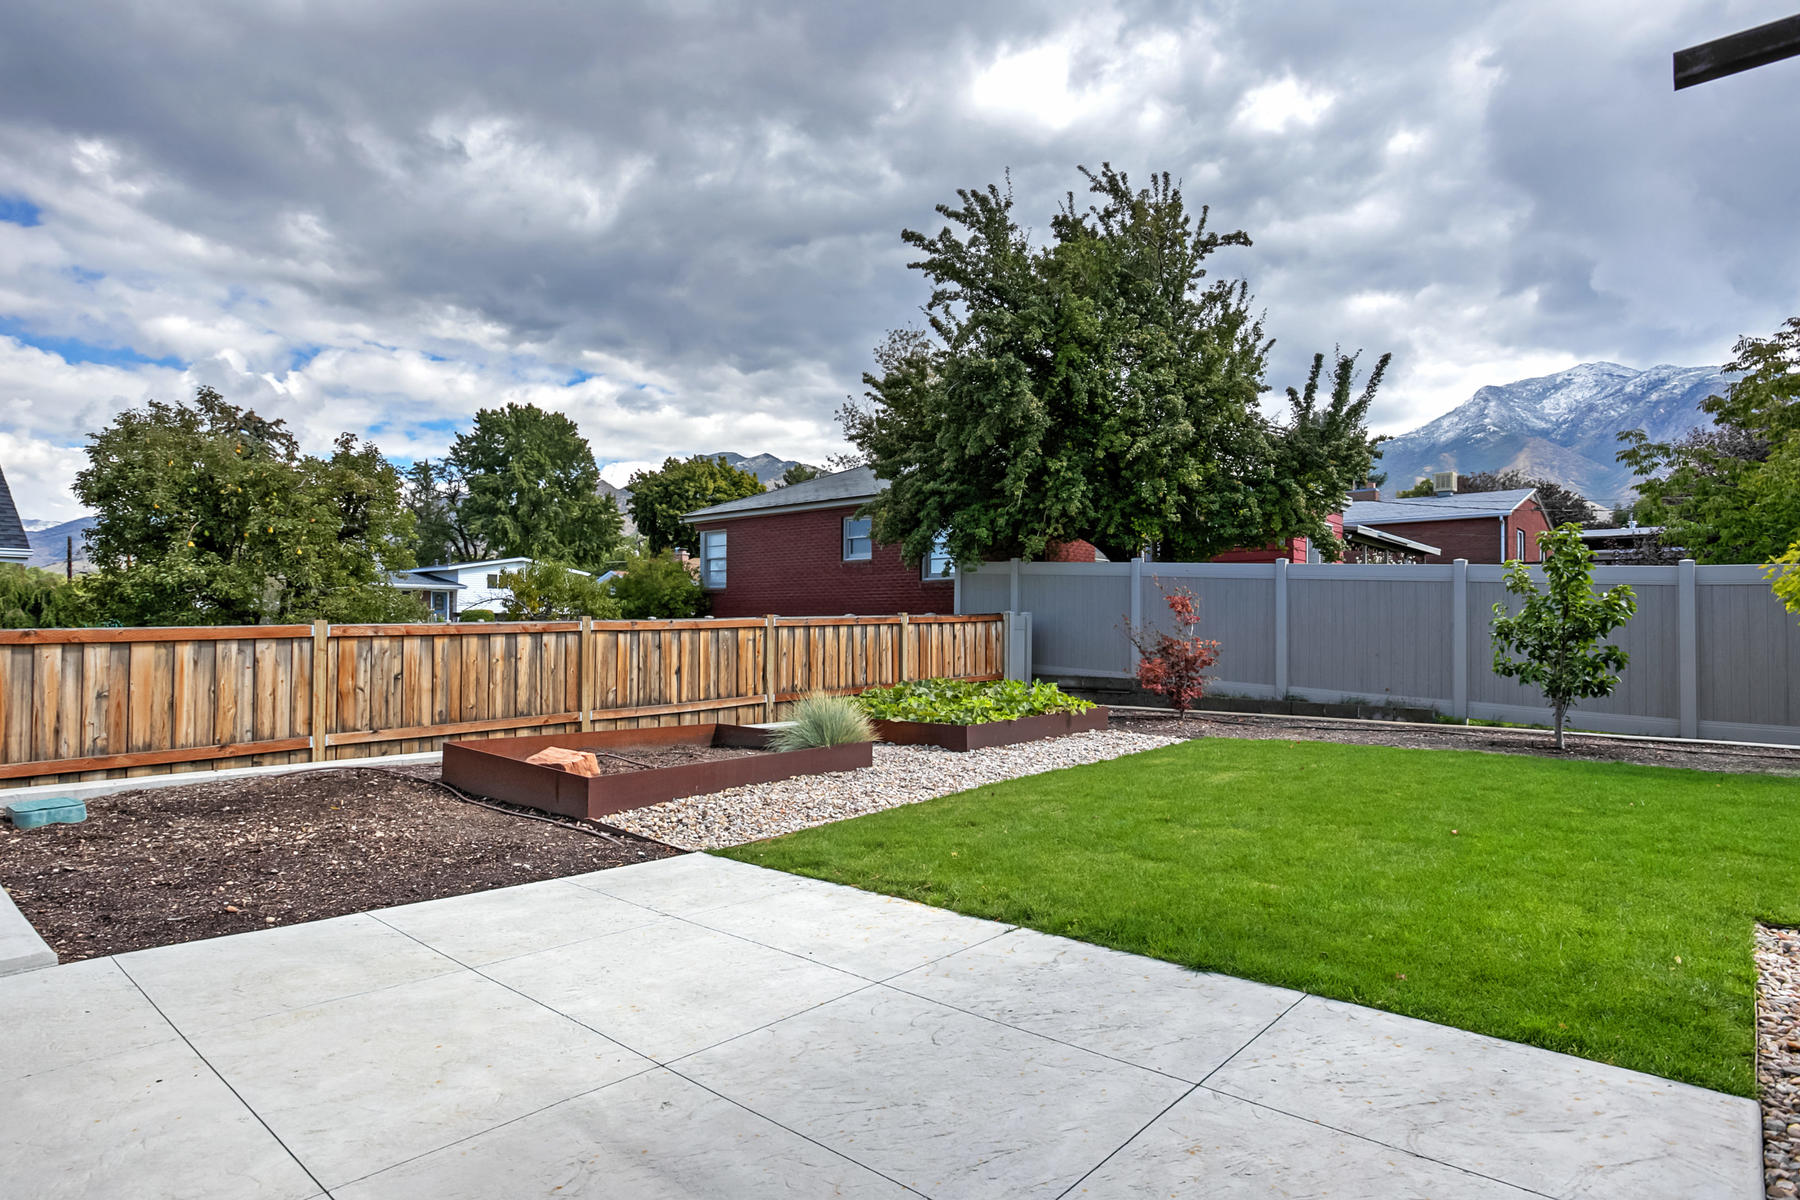 Additional photo for property listing at Incredible Custom Contemporary Home 3139 South 2600 East Salt Lake City, Utah 84109 United States